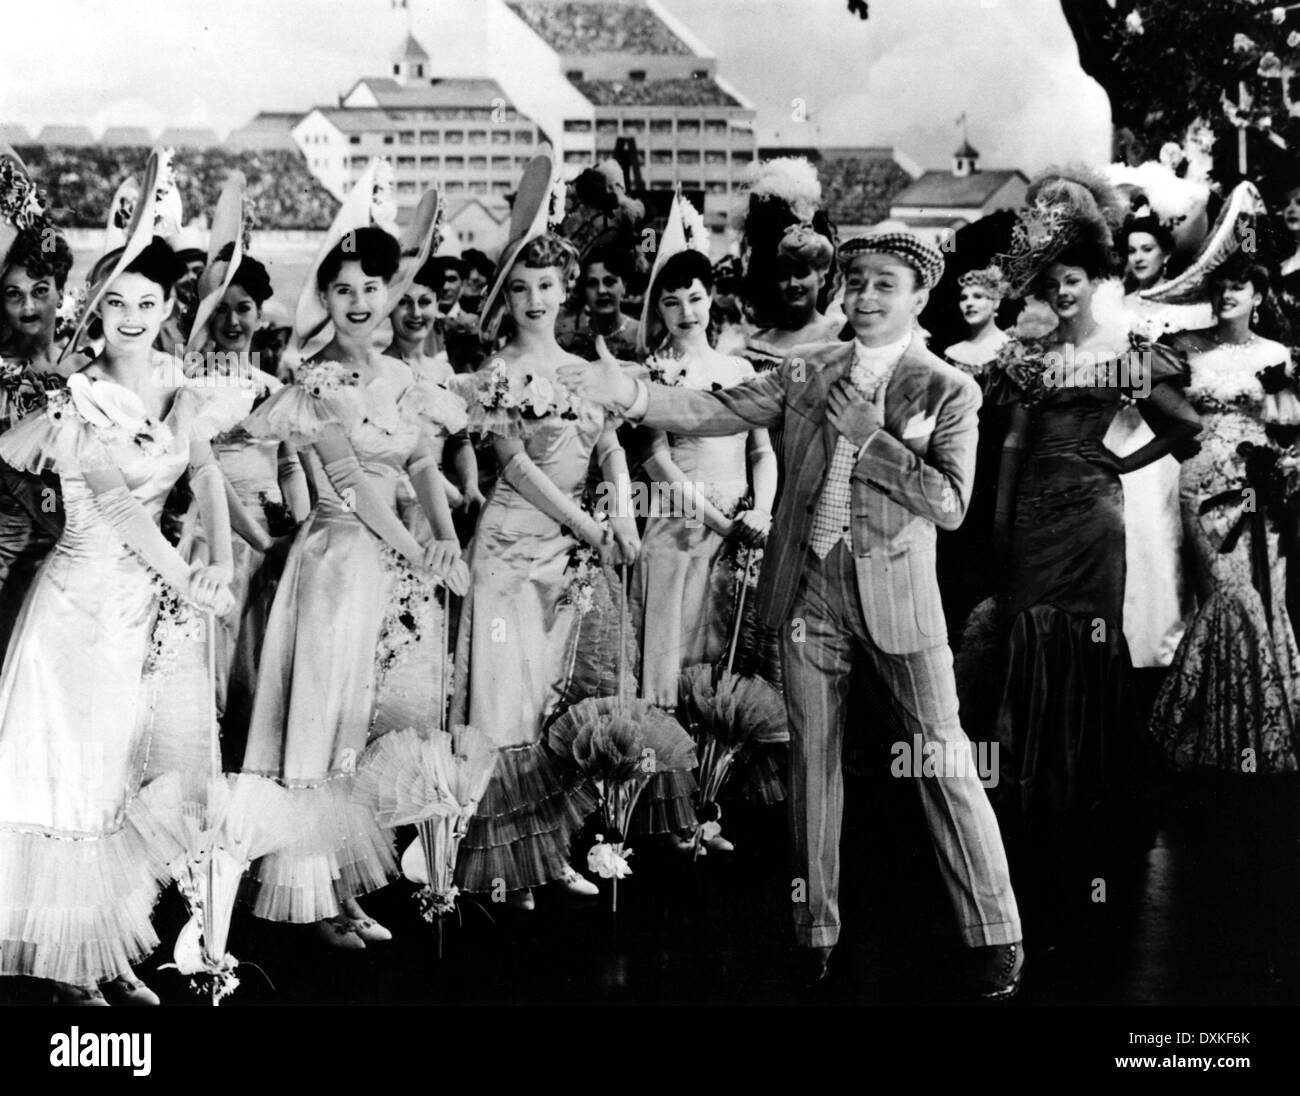 YANKEE DOODLE DANDY (US1942) JAMES CAGNEY - Stock Image